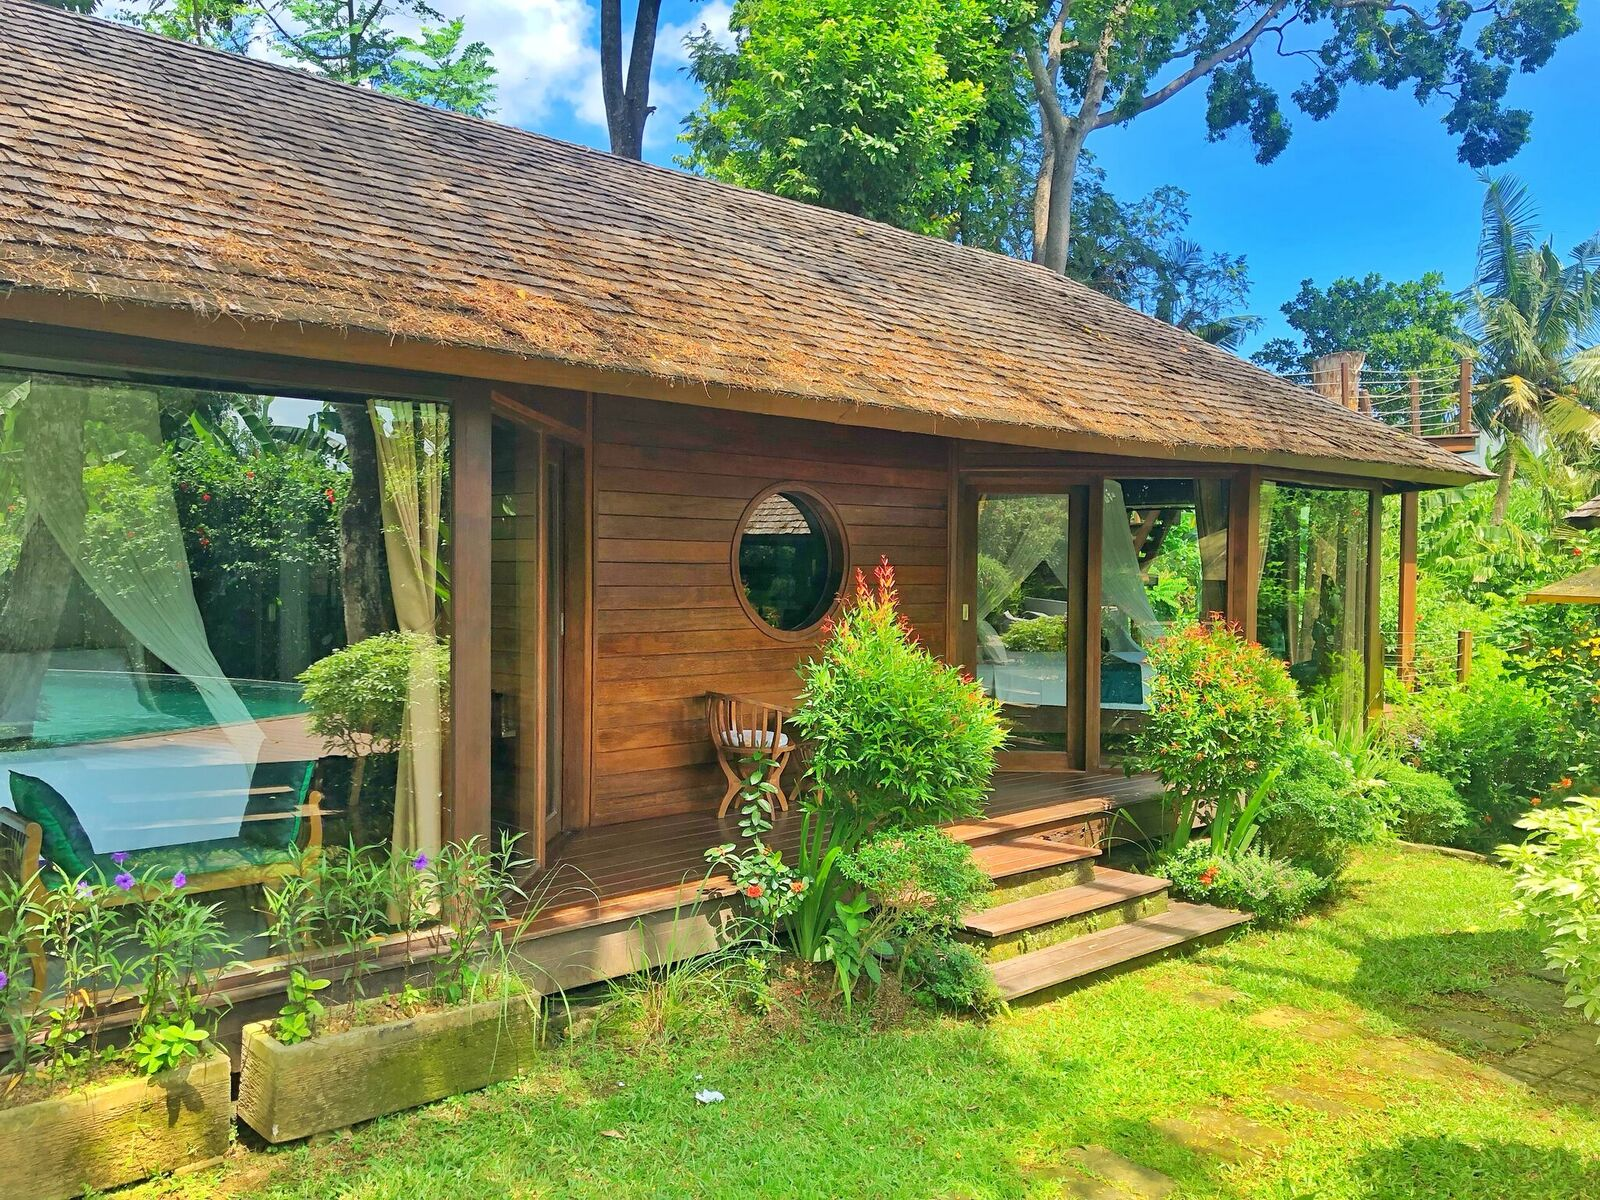 UNIQUE WOODEN VILLA AND PEACEFUL SURROUNDING IN CANGGU